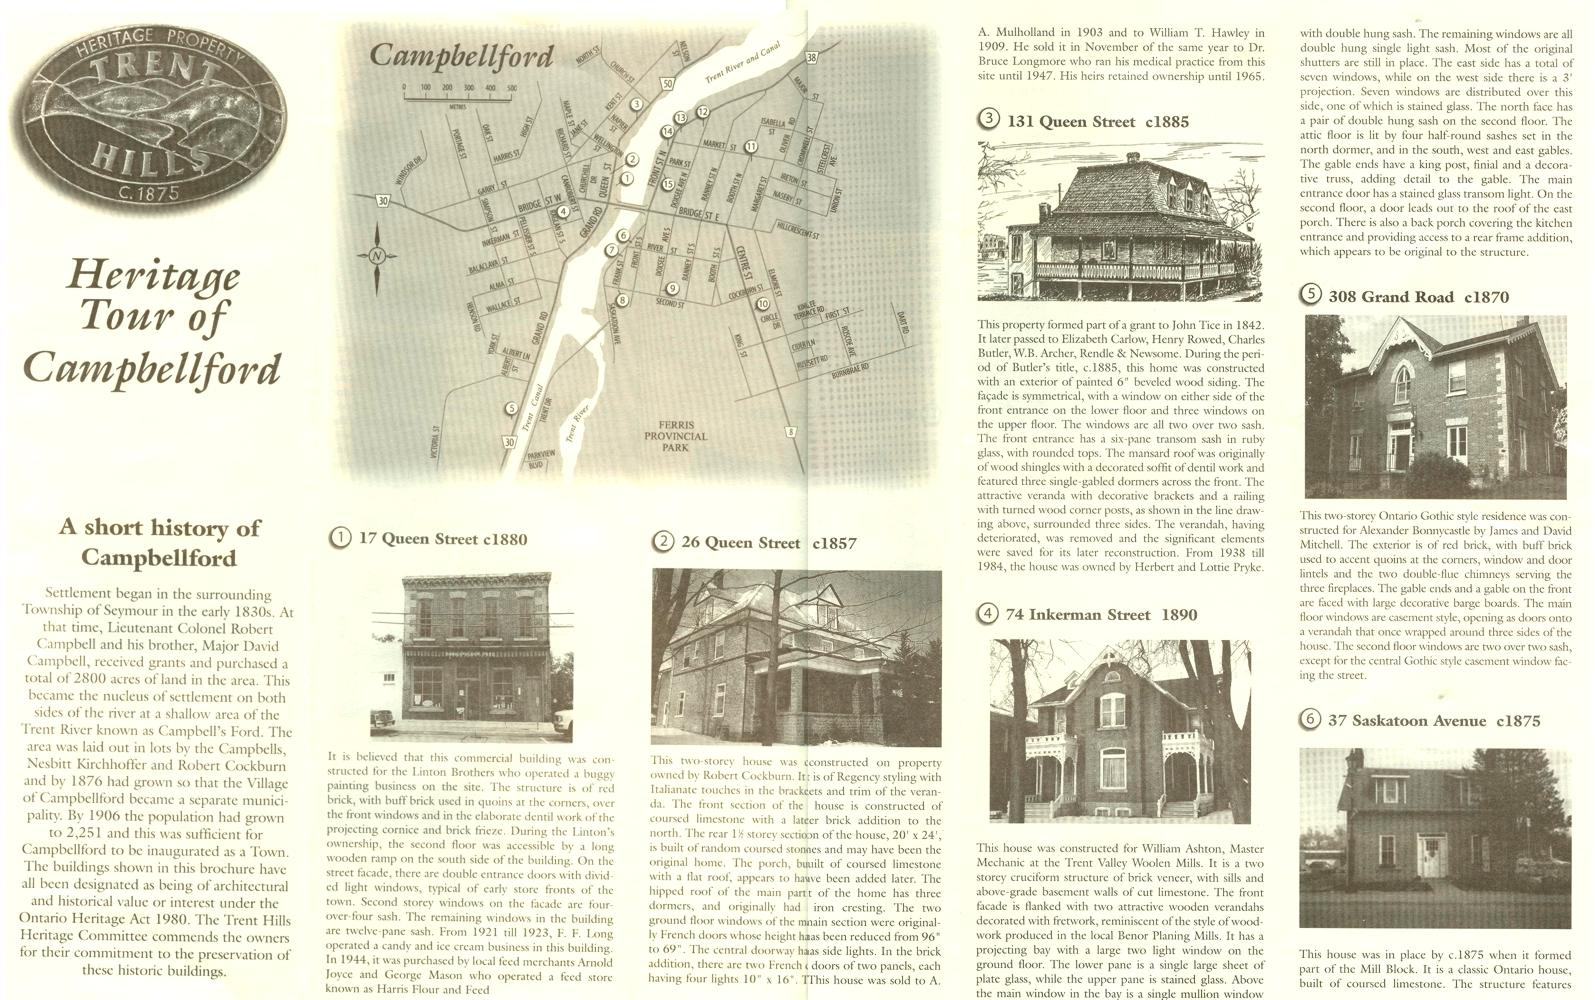 A Short History of Campbellford